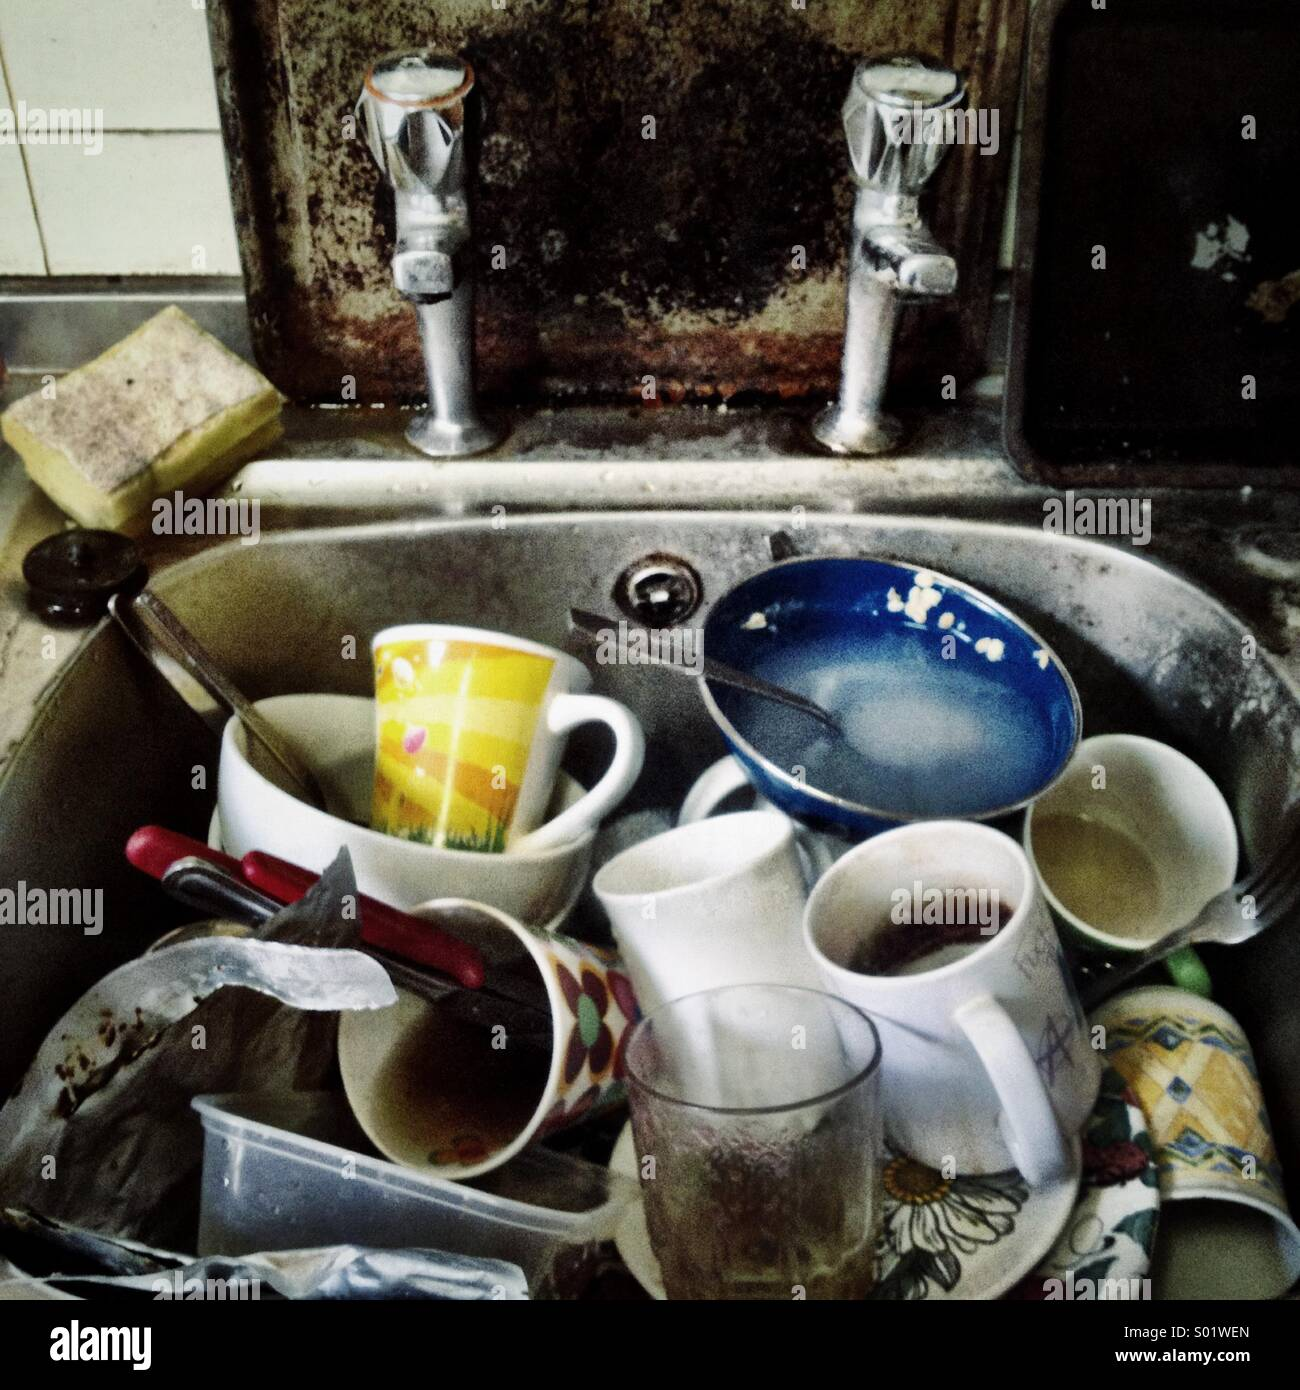 Close up of squalid kitchen sink full of dirty dishes - Stock Image